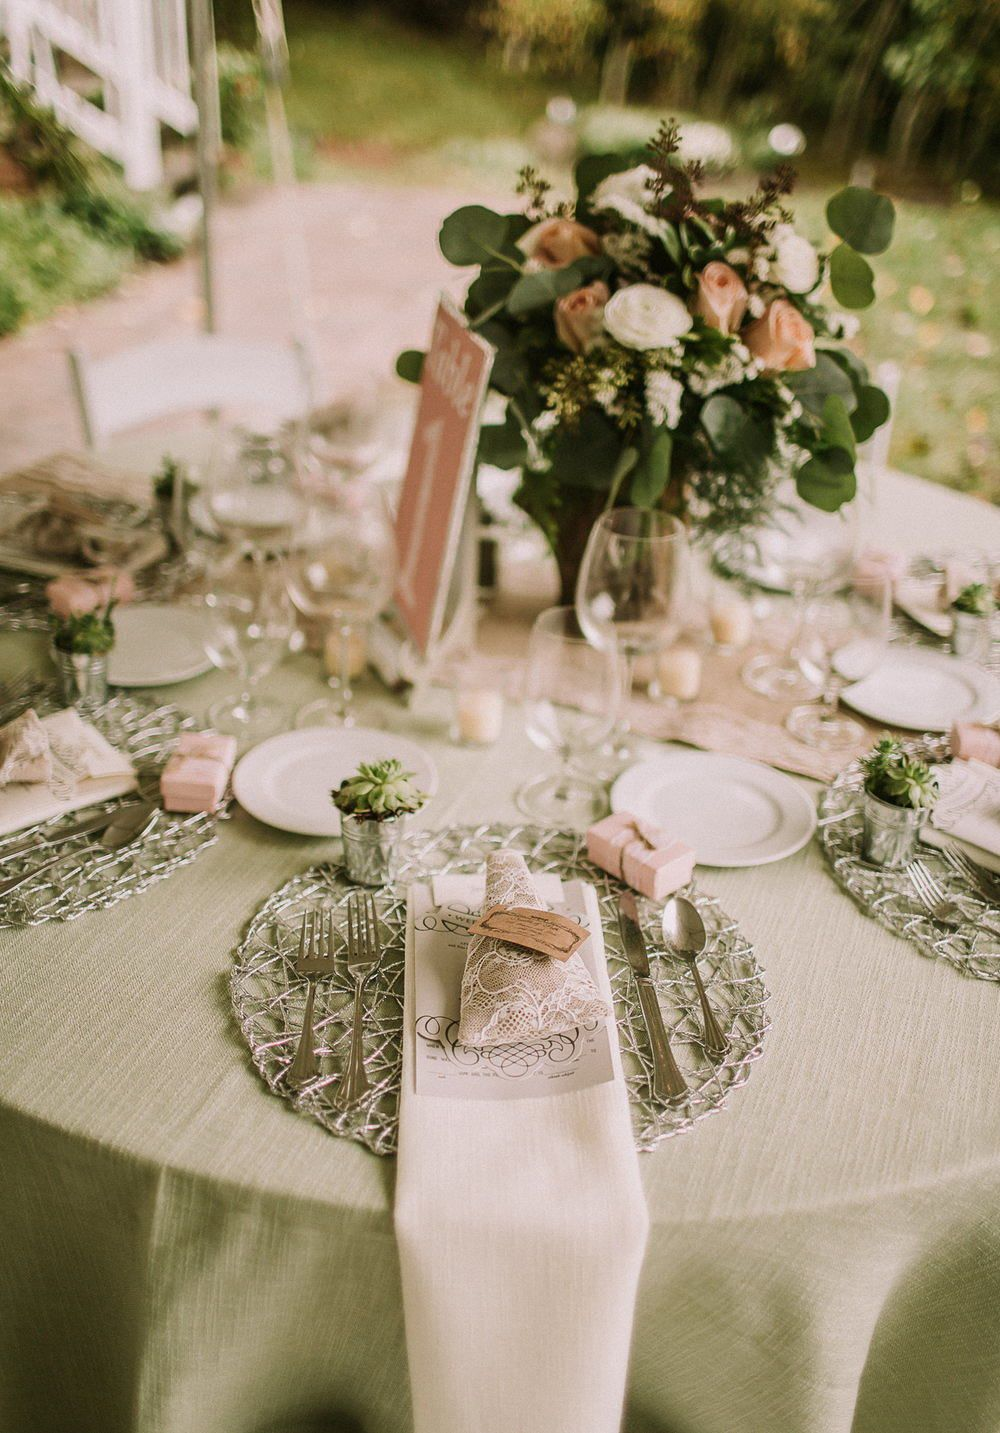 13 Reception Table Ideas For Your Wedding Destination Wedding Elopement Adventure Photographer In 2020 Round Wedding Tables Reception Table Backyard Wedding